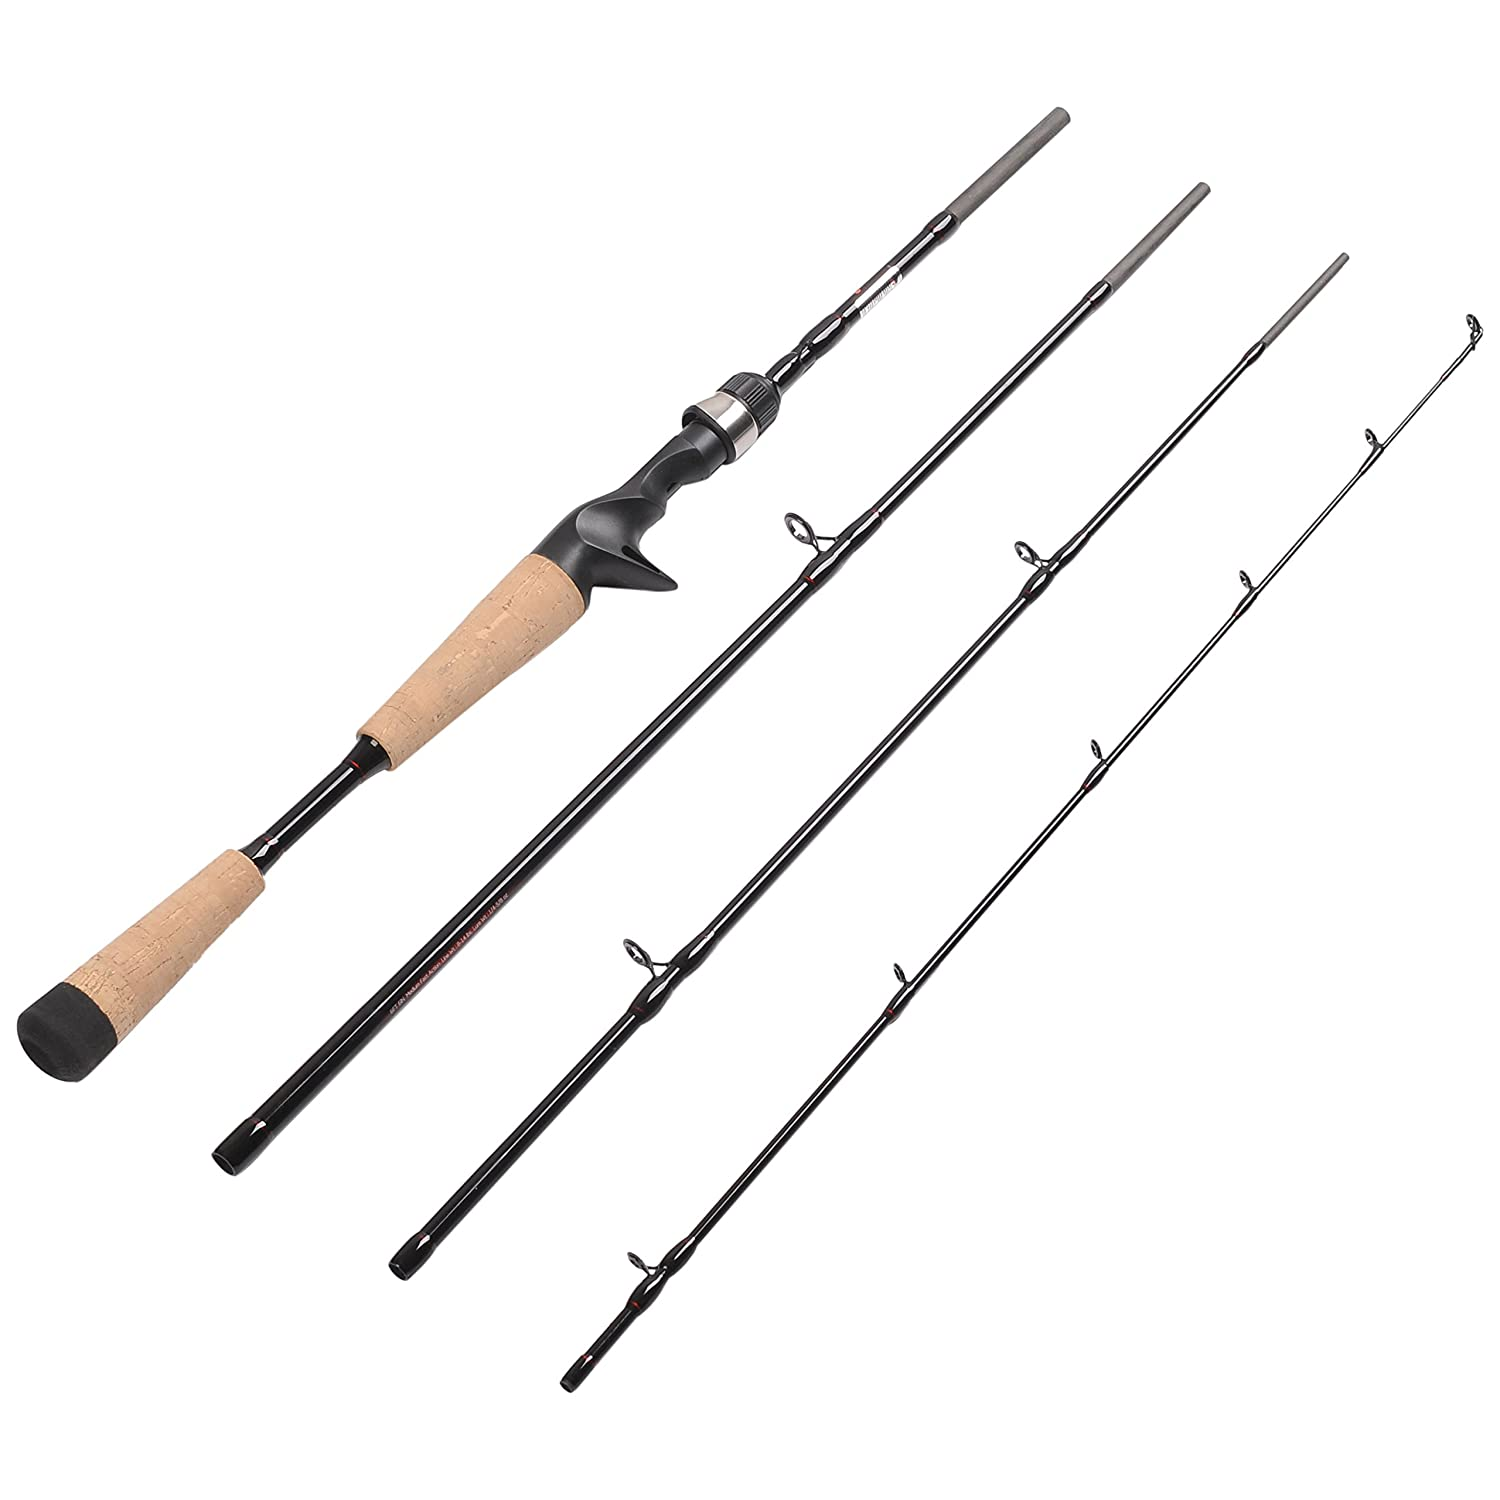 fiblink 4 pieces travel casting rod graphite baitcasting